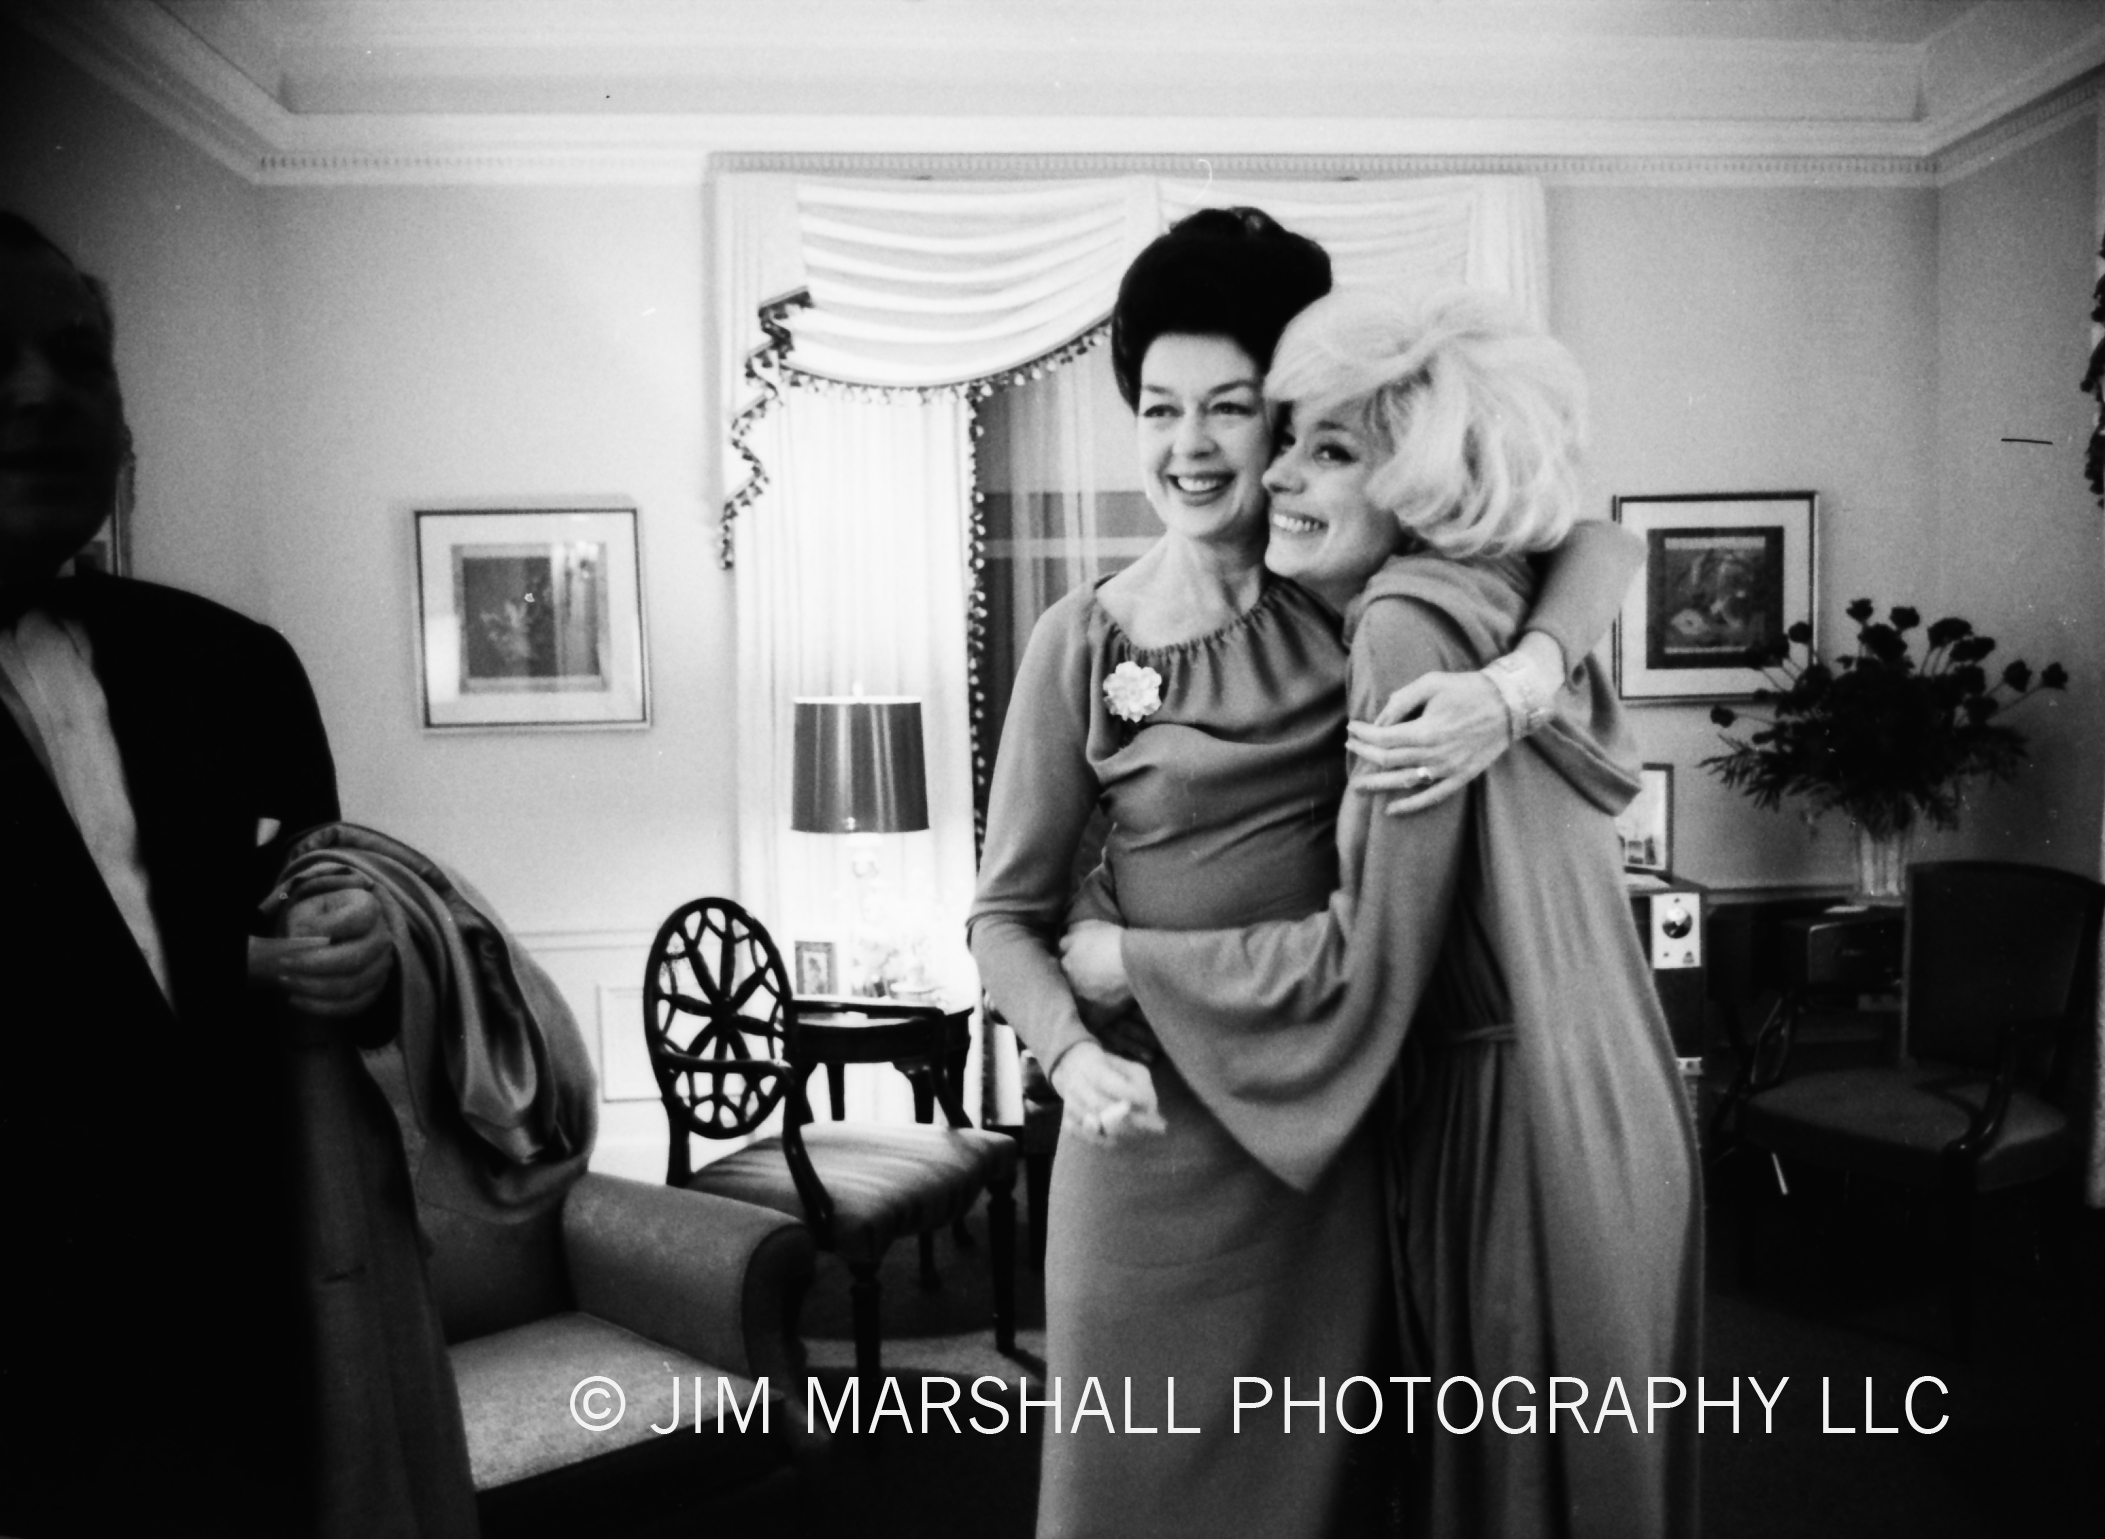 Carol Channing and Rosaline Russell